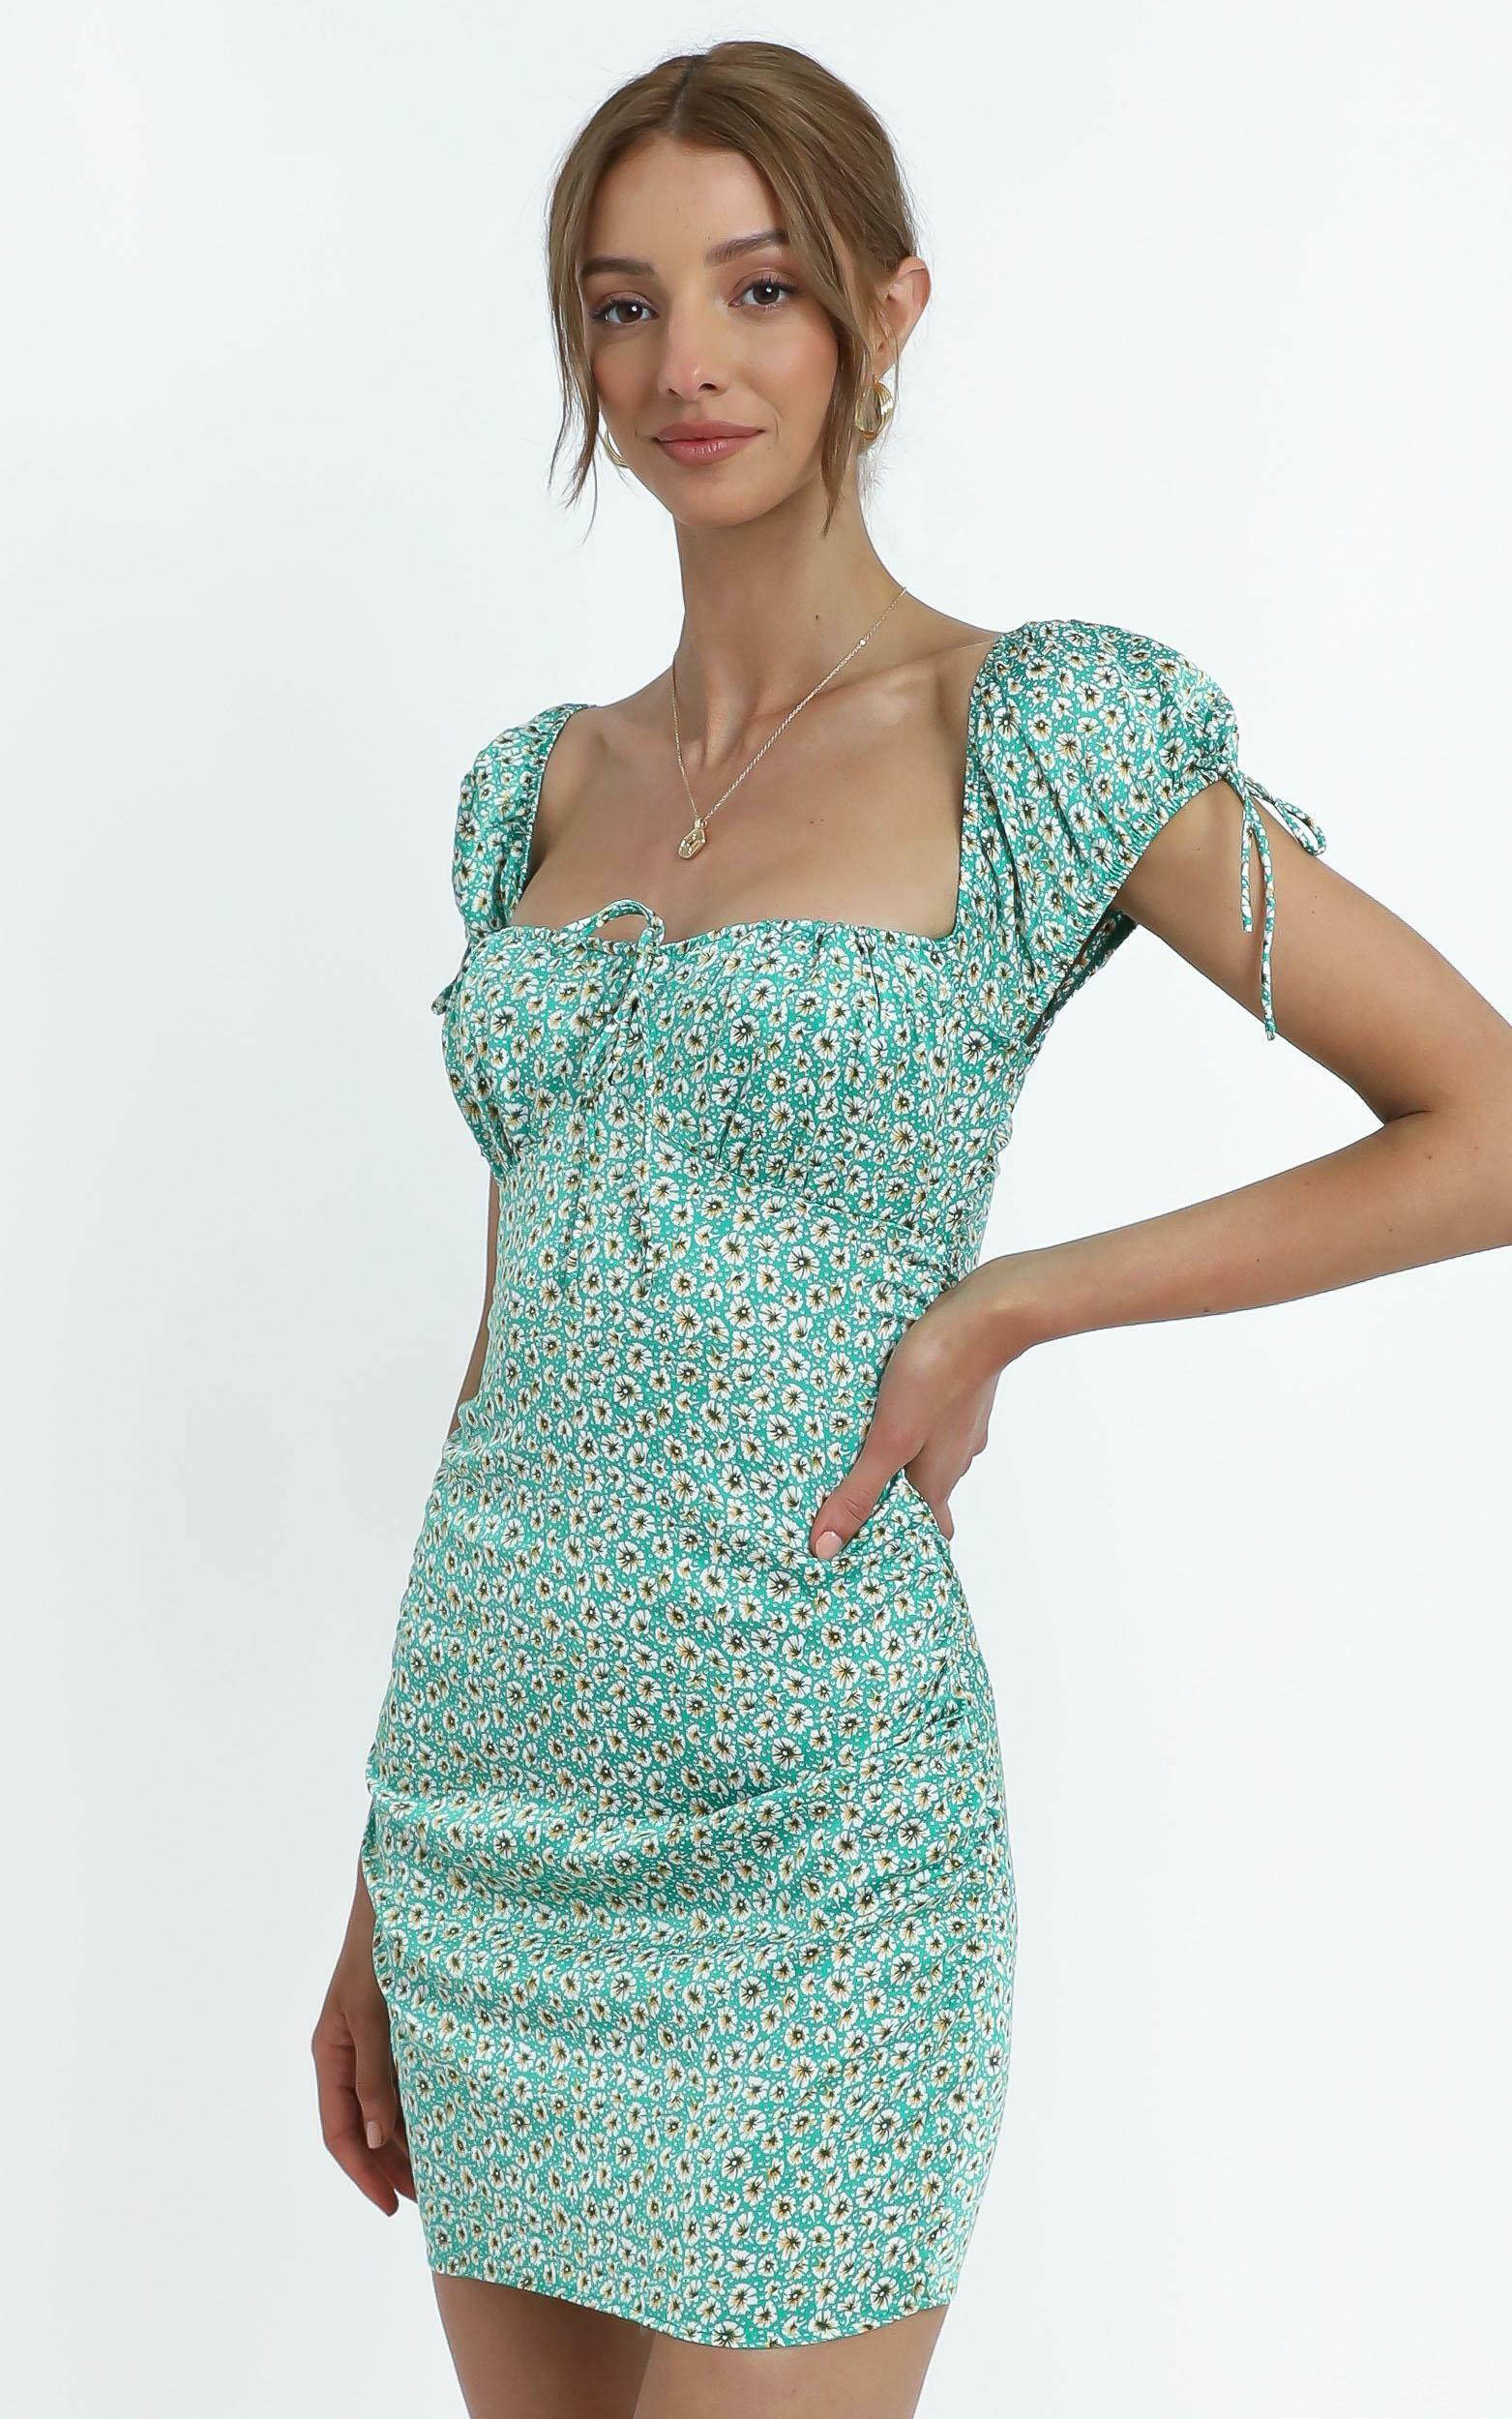 Whitley Dress in Sage Floral - 14 (XL), Green, hi-res image number null